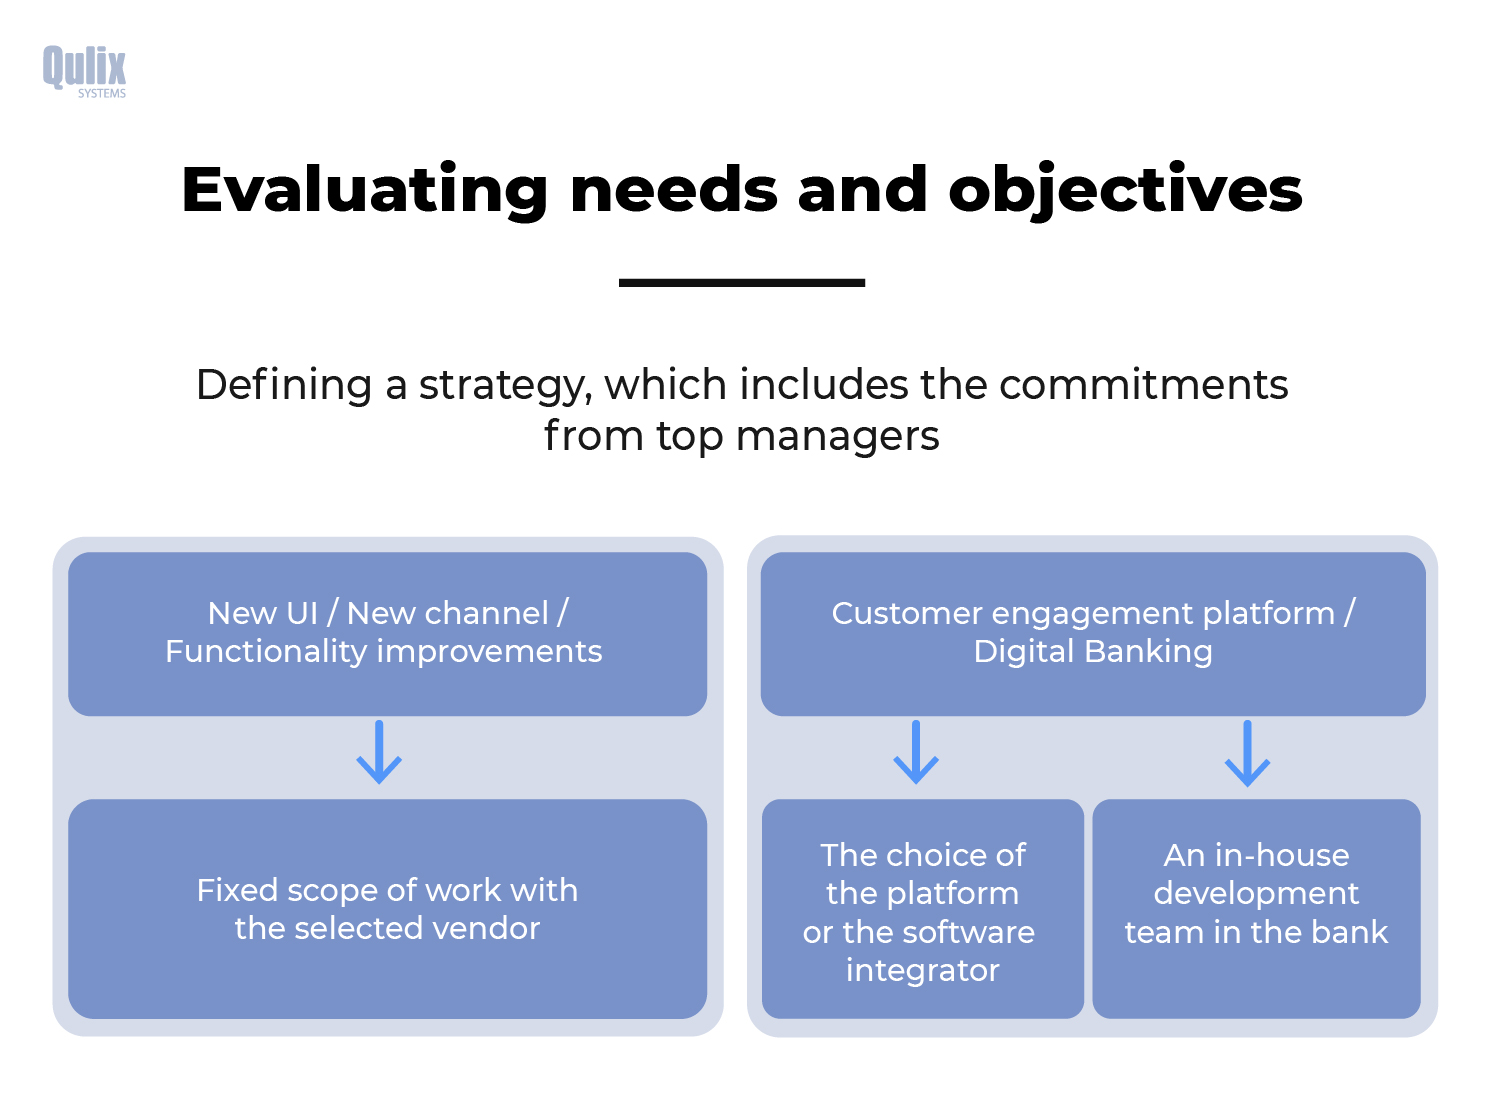 needs and objectives in digital banking